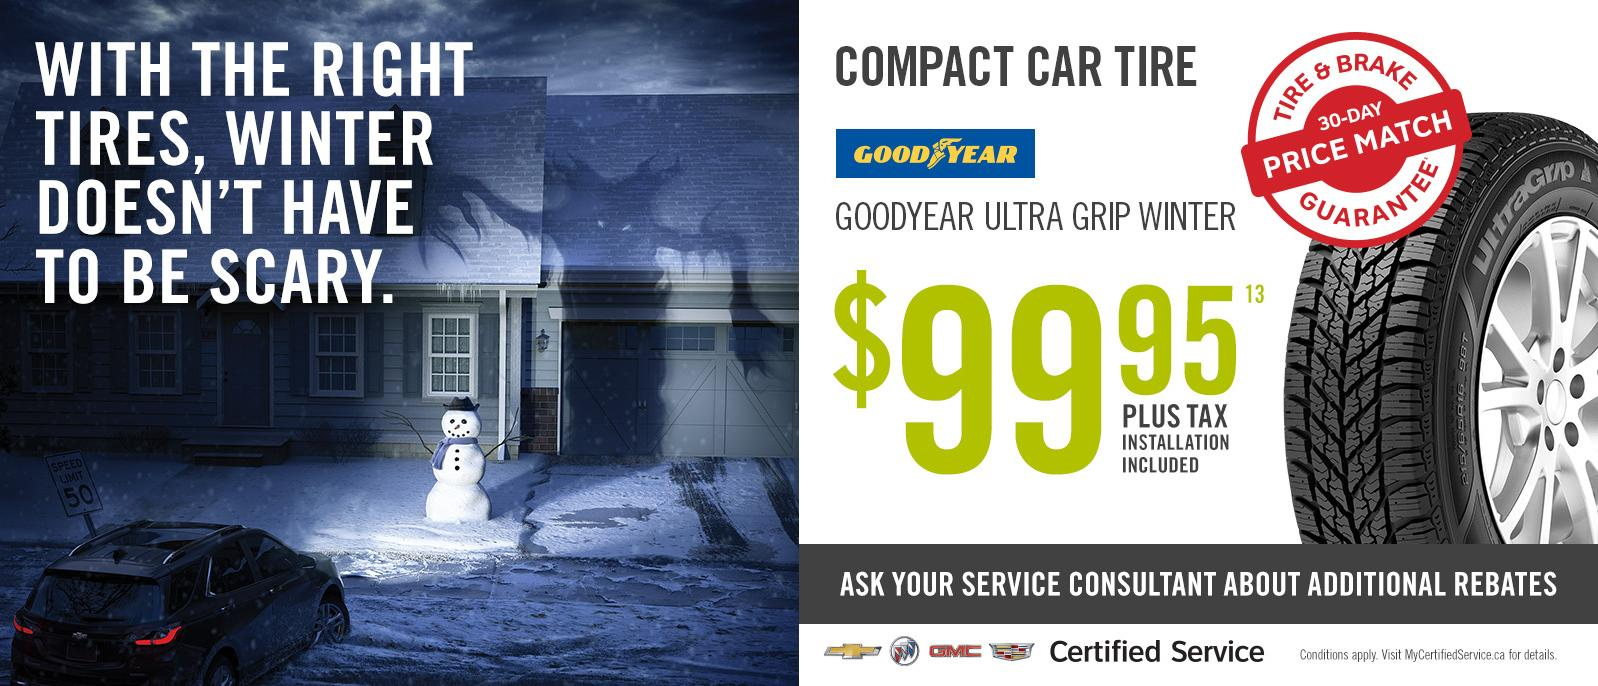 Winter Tire Special Deal Compact Car Goodyear from $99.95 VanDusen Ajax Ontario